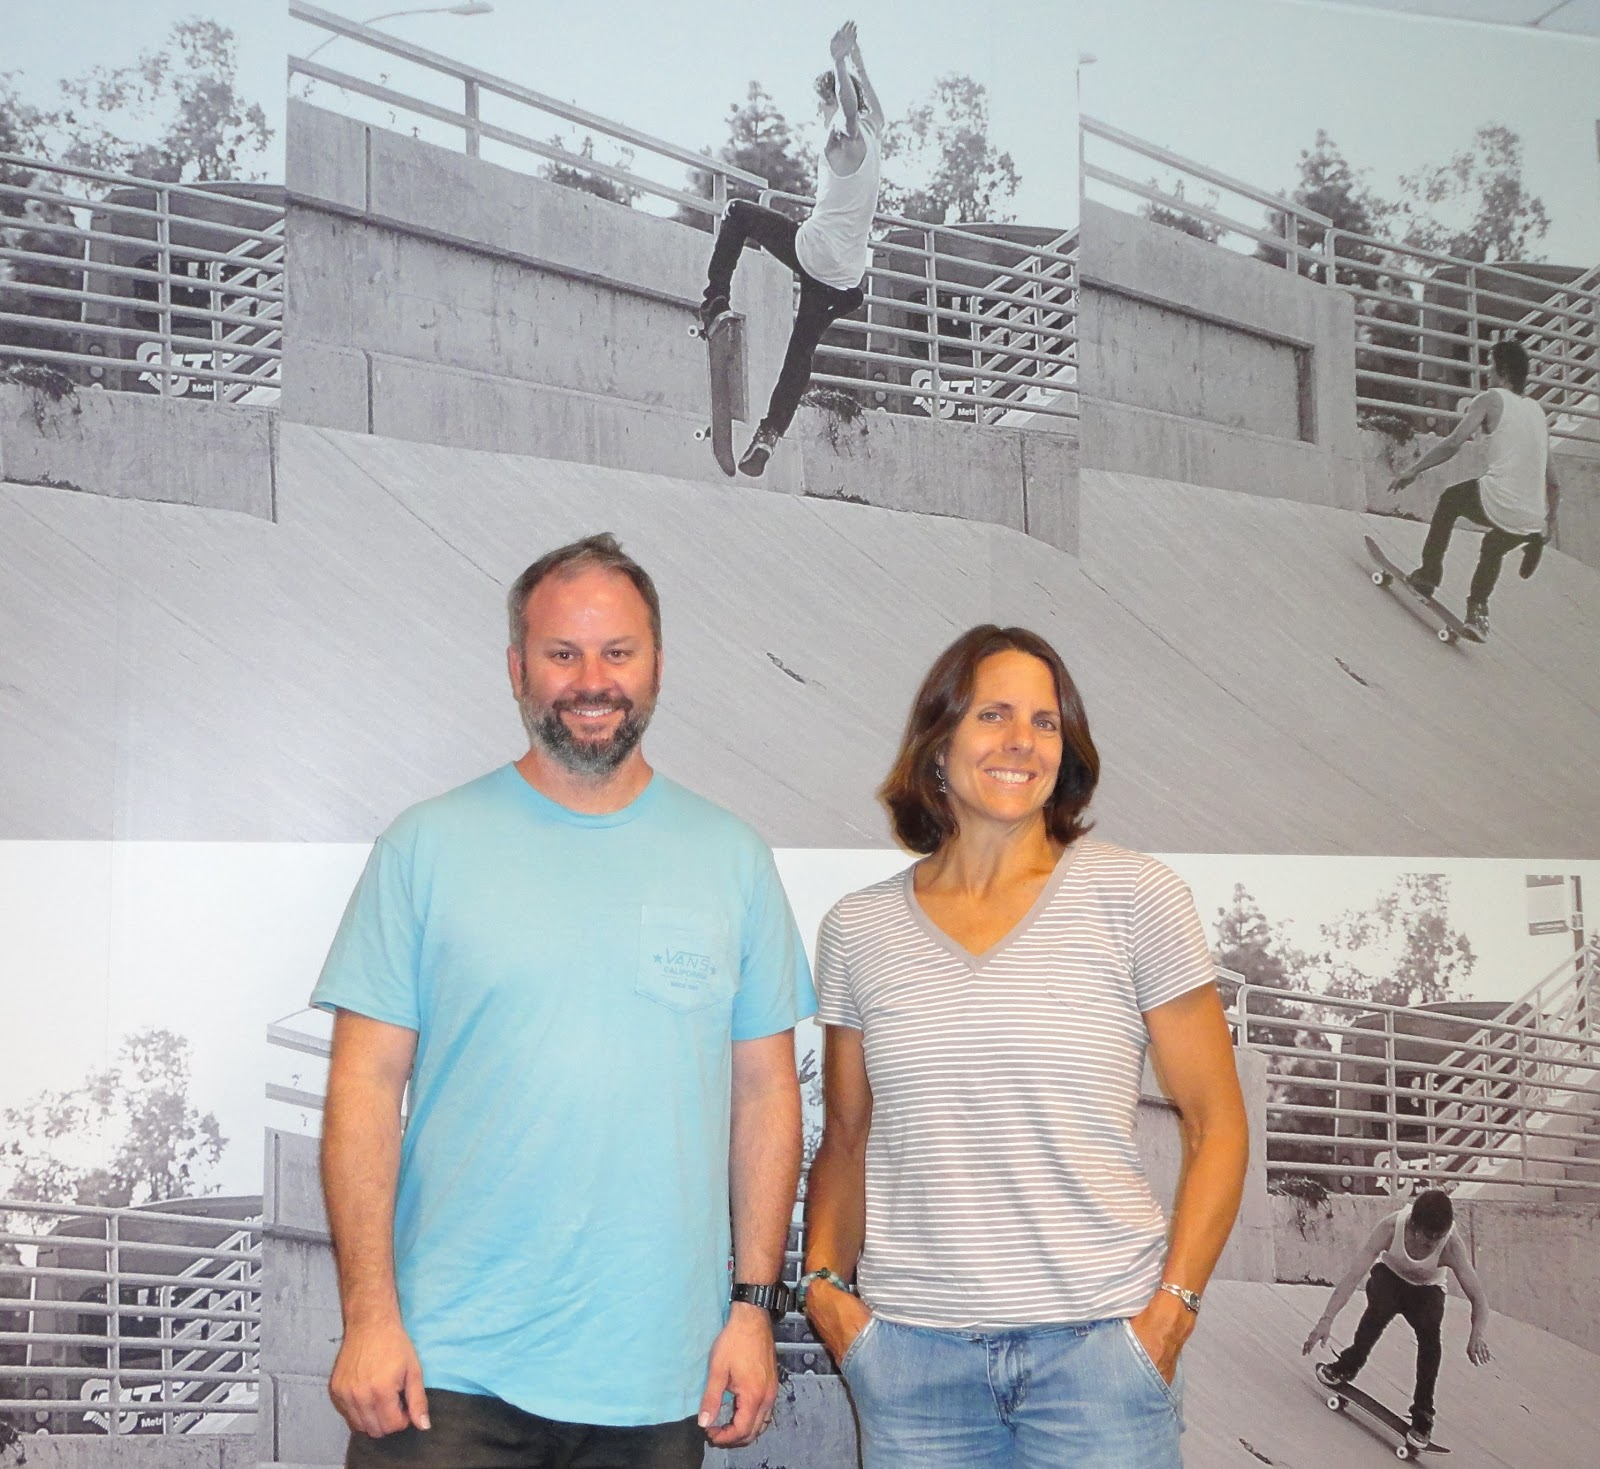 """1c2cc88135 Lamott started her tour of the facilities by taking SurfWriter Girls to see  Vans  """"Timeline"""" mural depicting the evolution of Vans and its products  over the ..."""